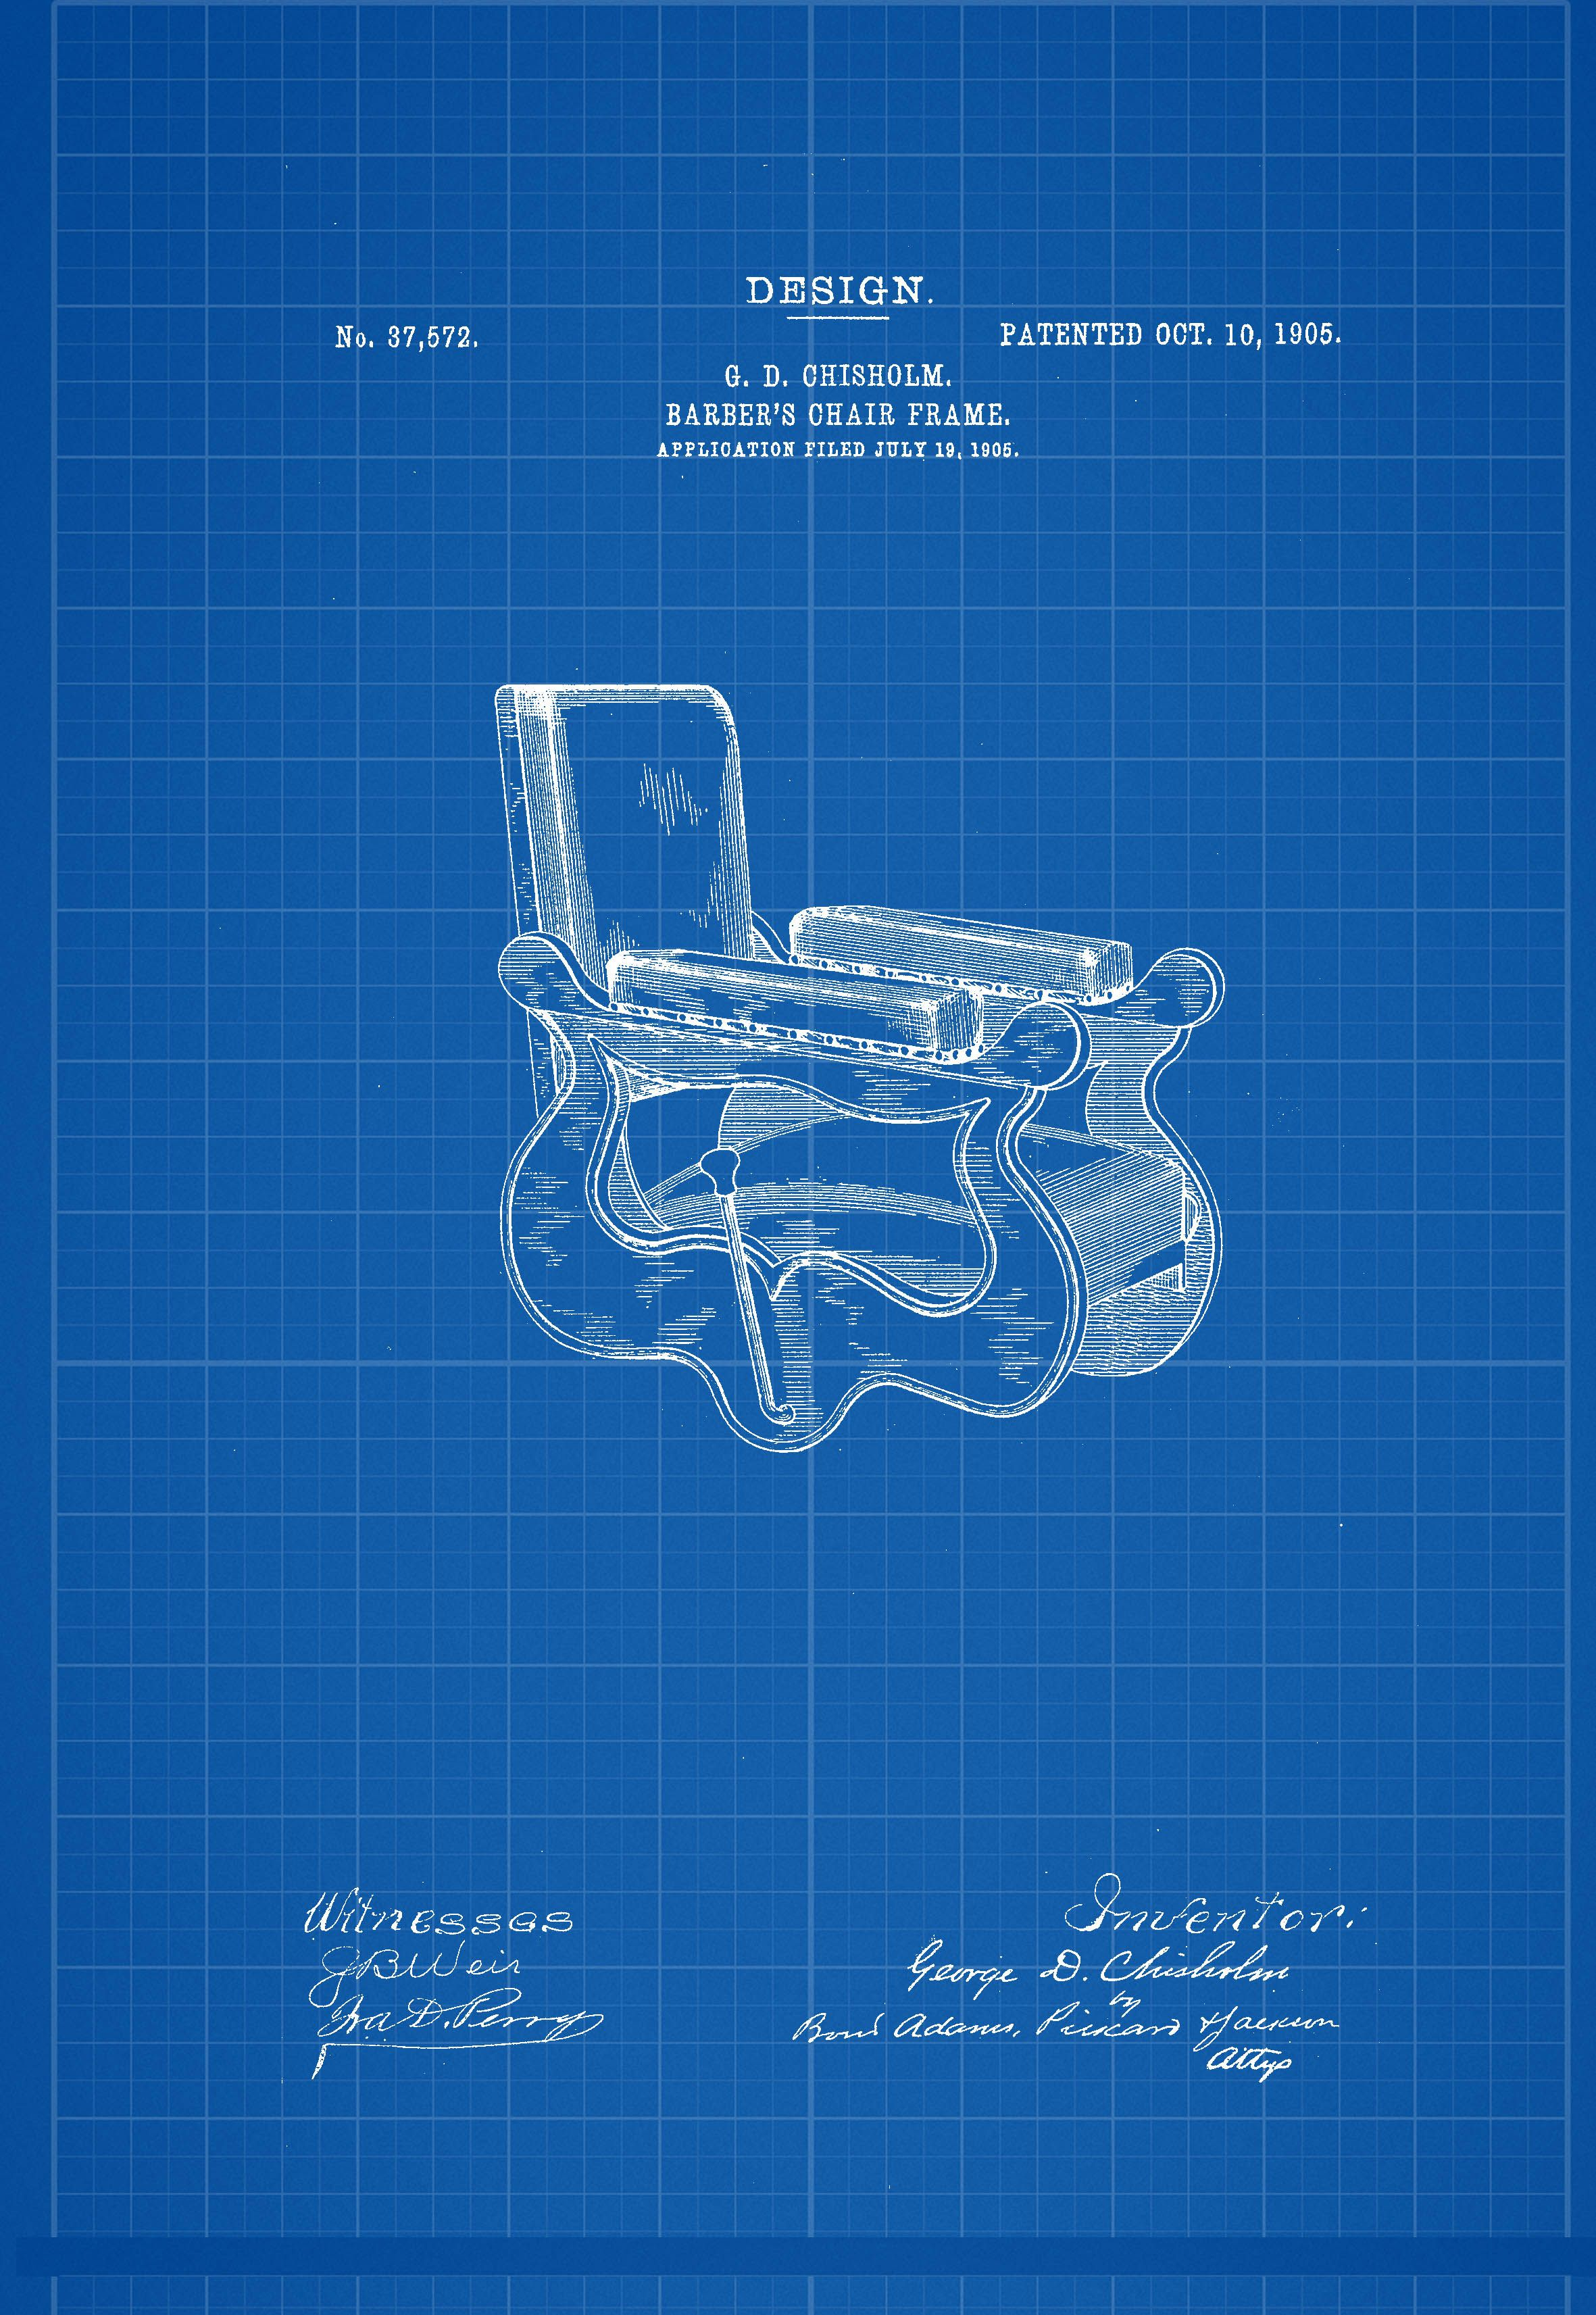 Barber chair 1905 blueprint patent poster print pinterest barber chair 1905 blueprint patent poster print barber chair 1905 blueprint patent poster print malvernweather Choice Image